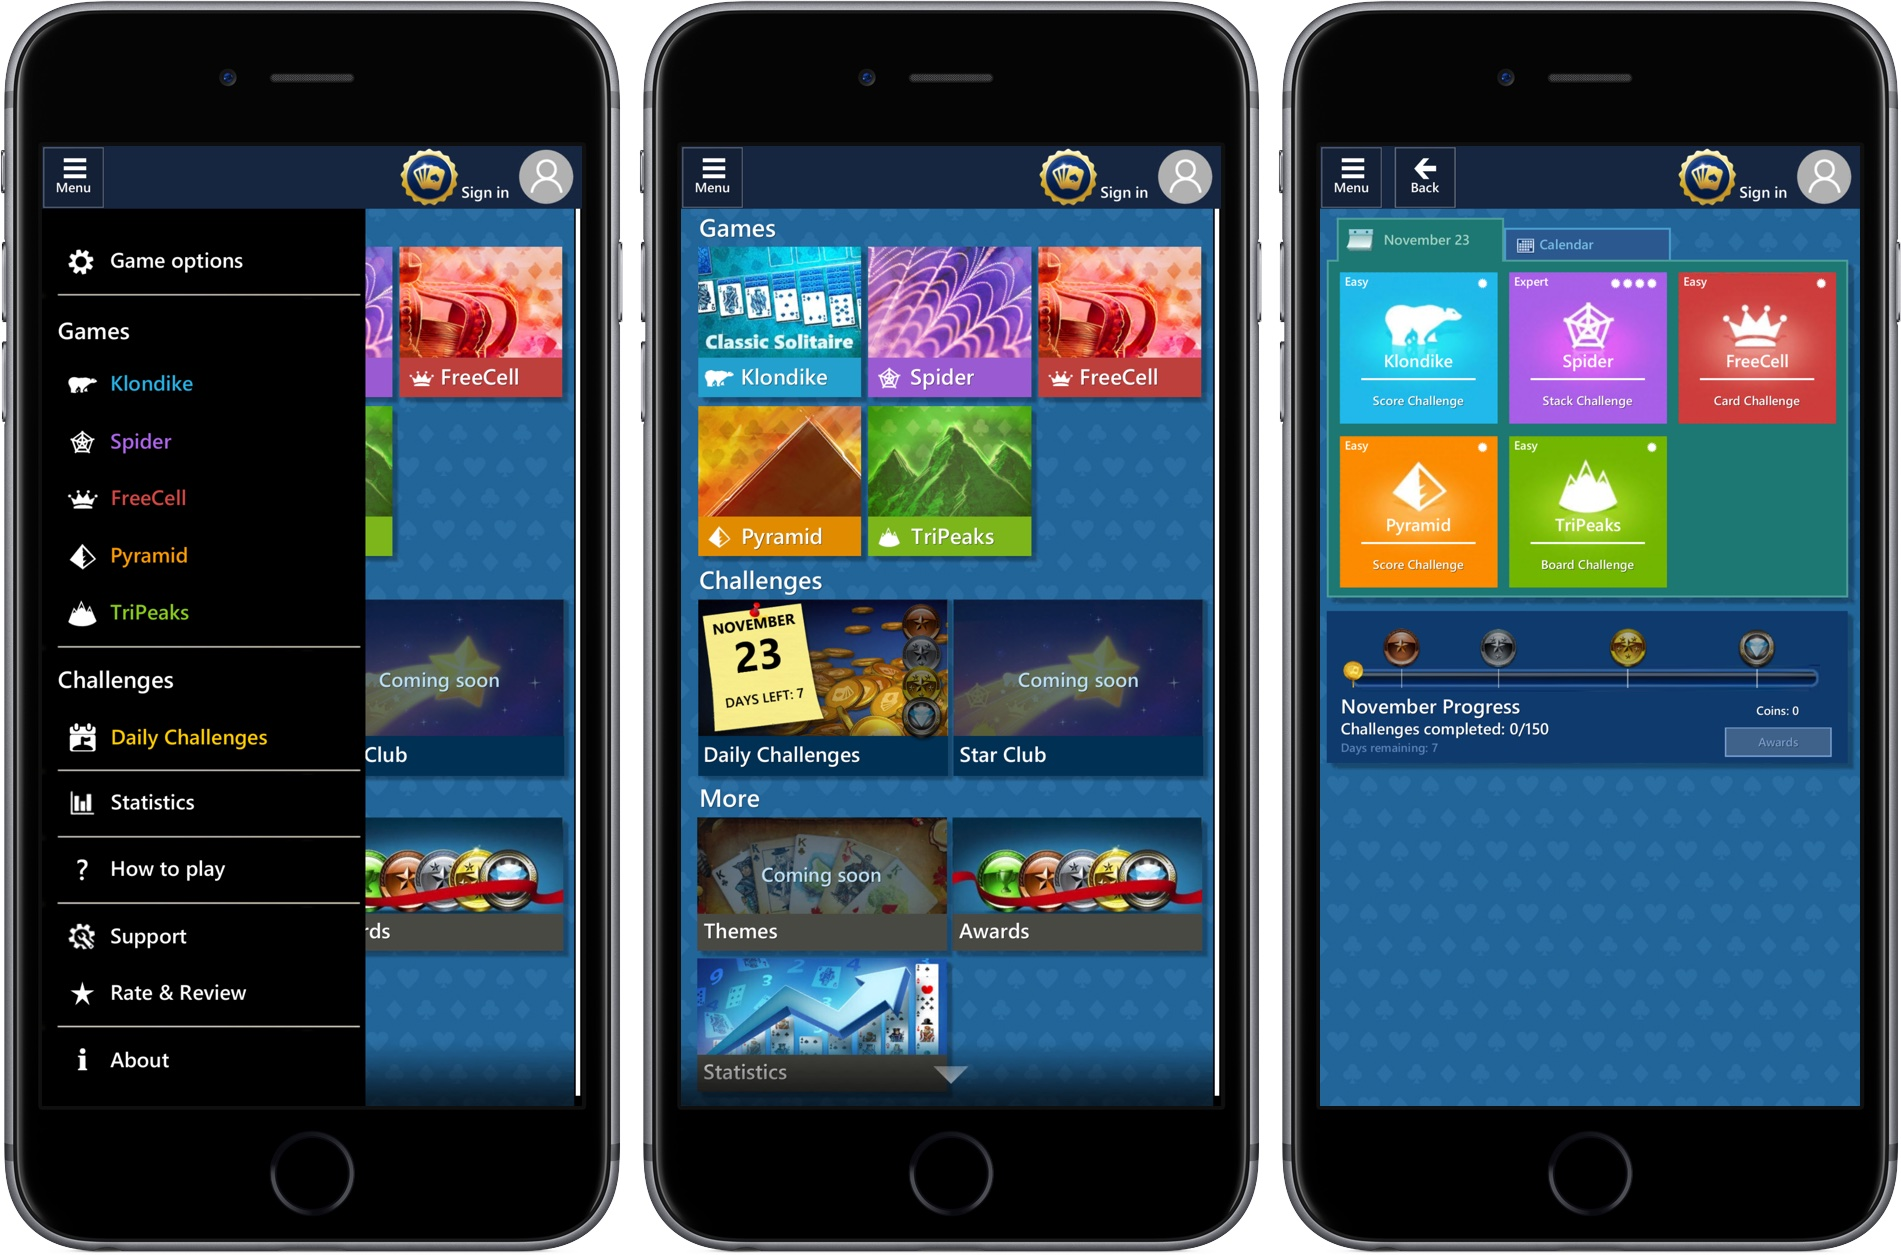 Microsoft Solitaire Collection for iOS iPhone screenshot 002